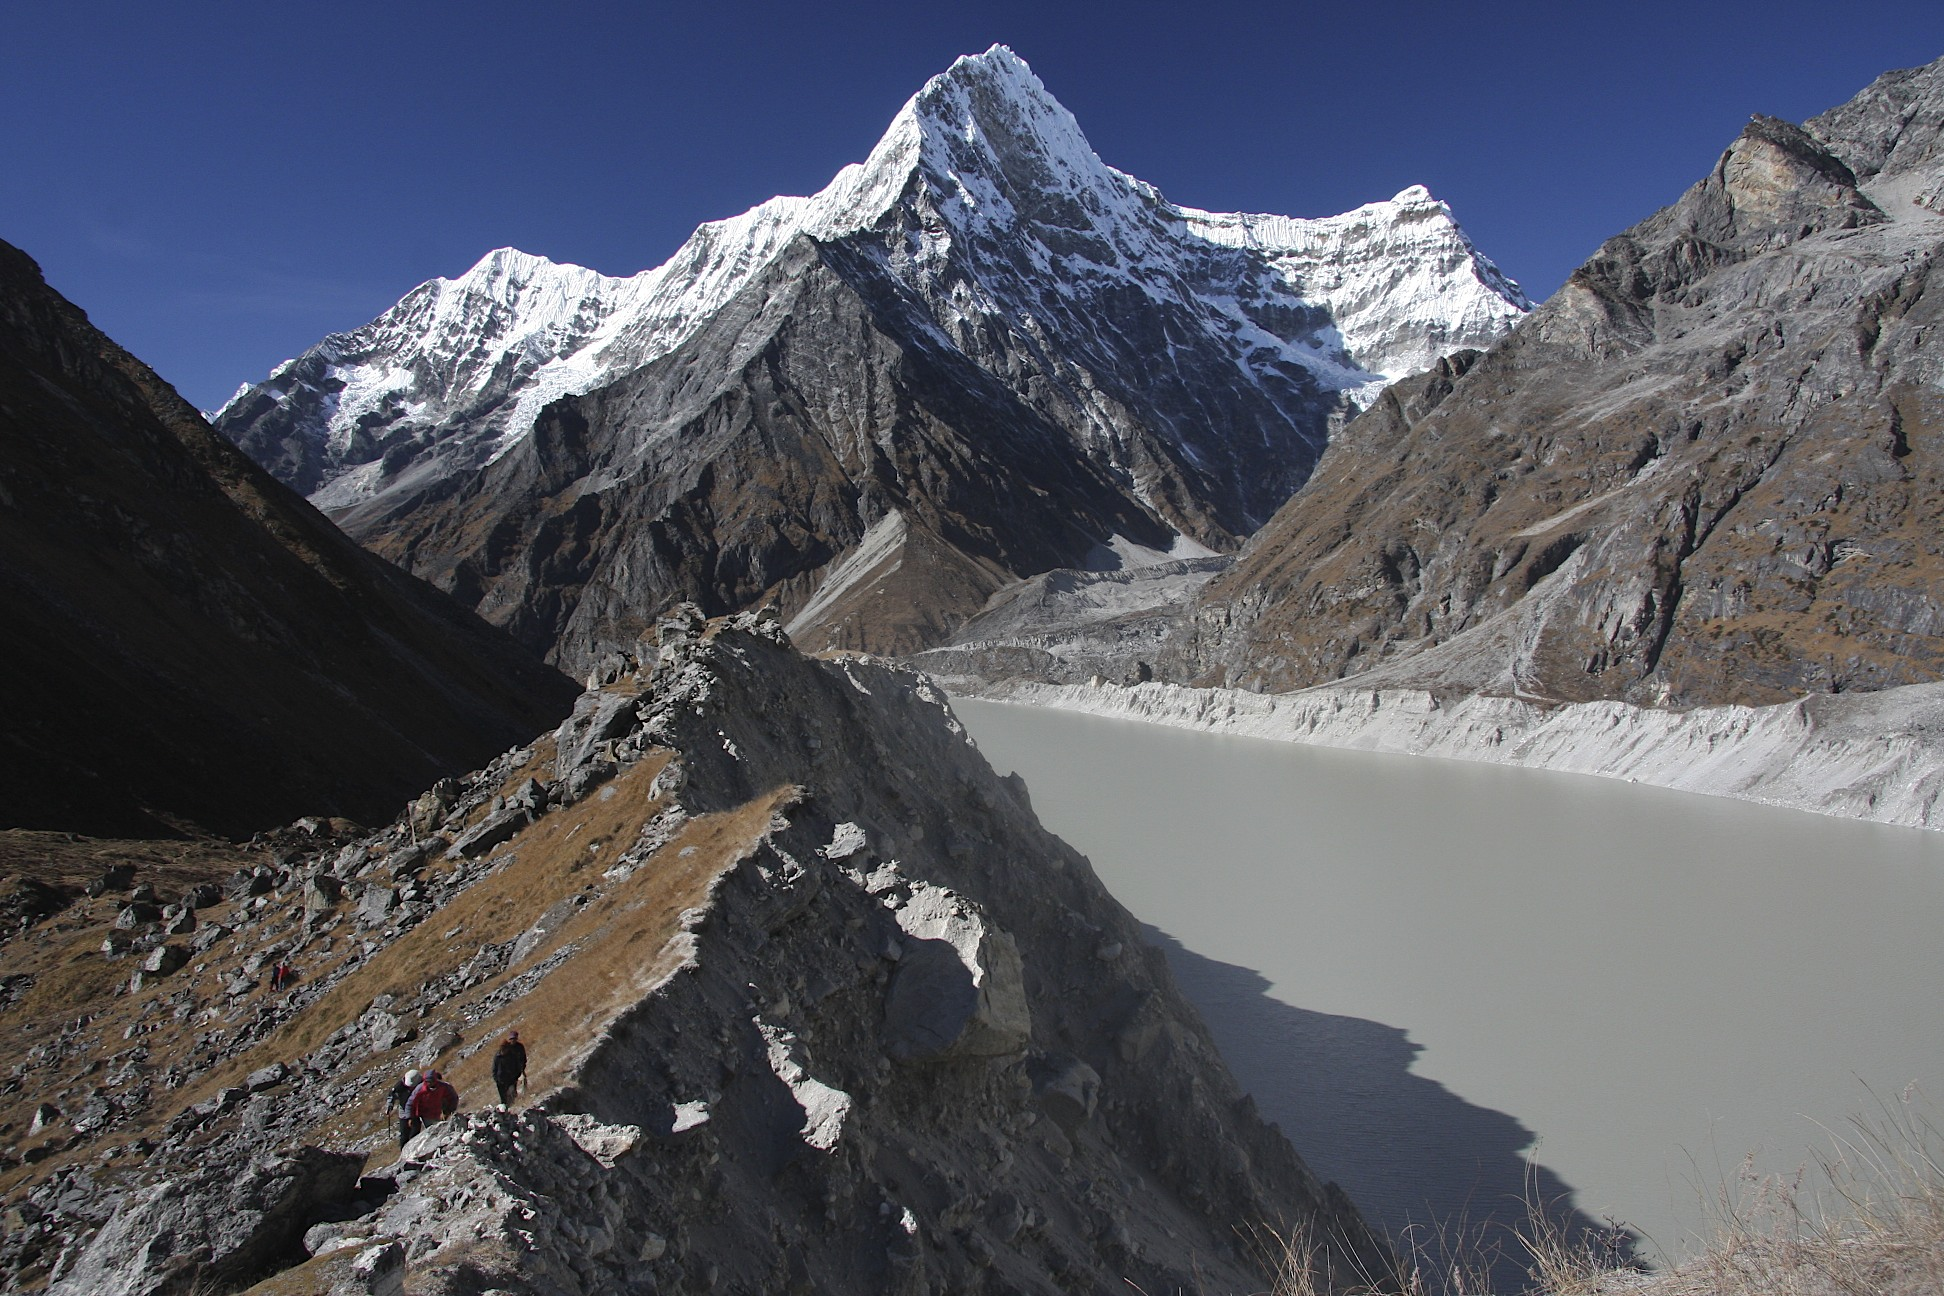 Kang Nachugo and Tso Rolpa Lake